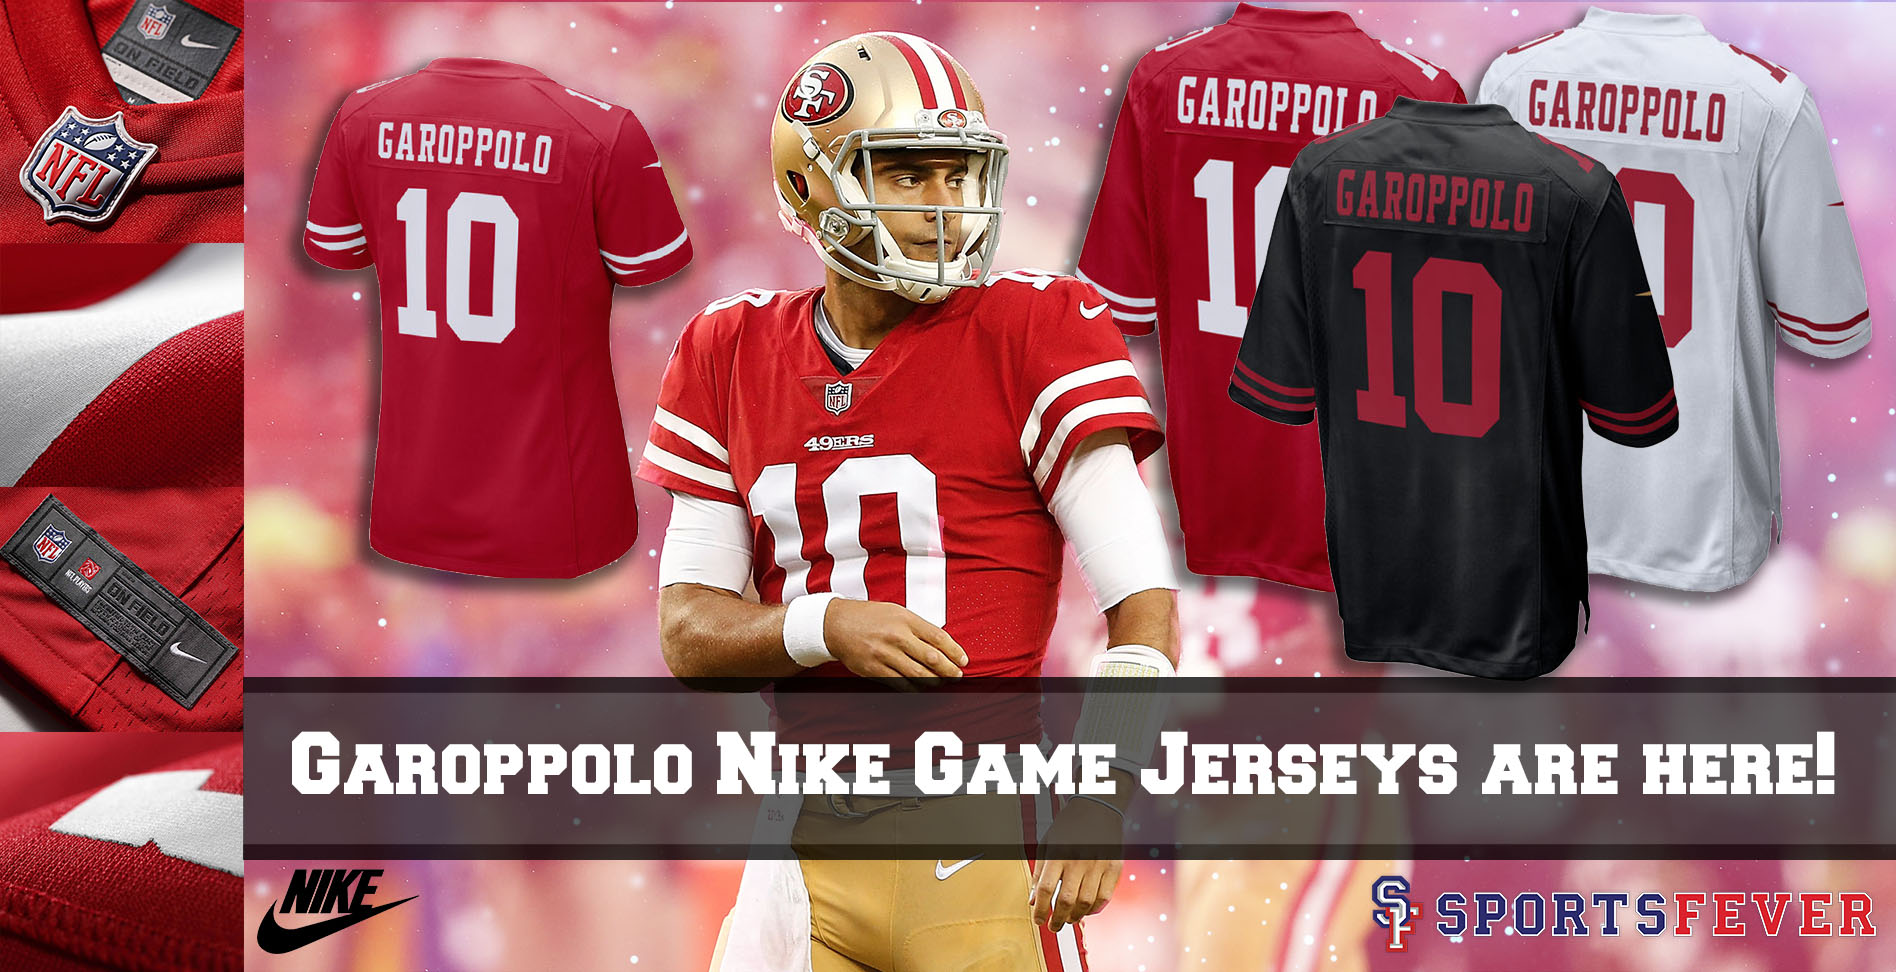 quality design f9952 64149 NFL - San Francisco 49ers - Jimmy Garopollo - Sports Fever